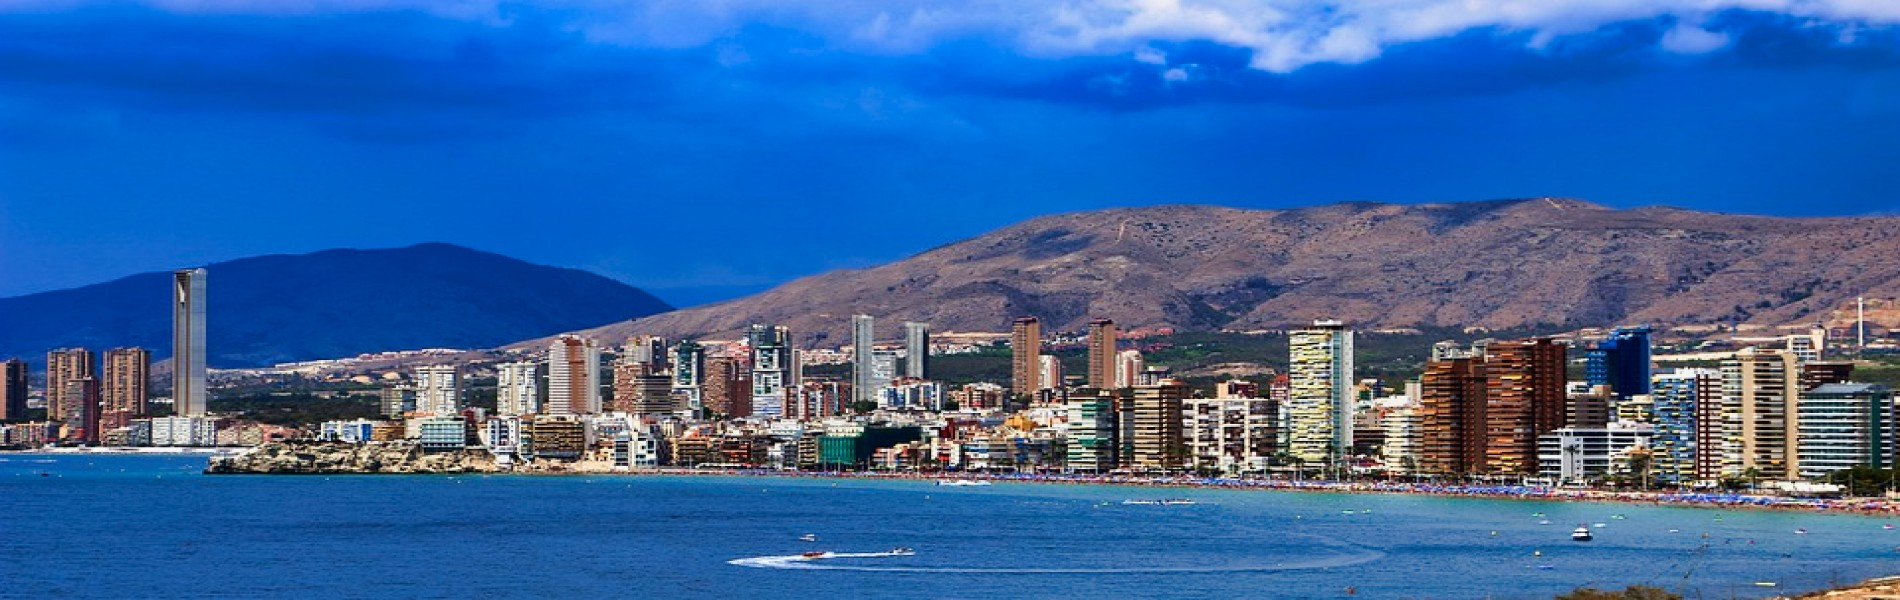 Travel to Benidorm